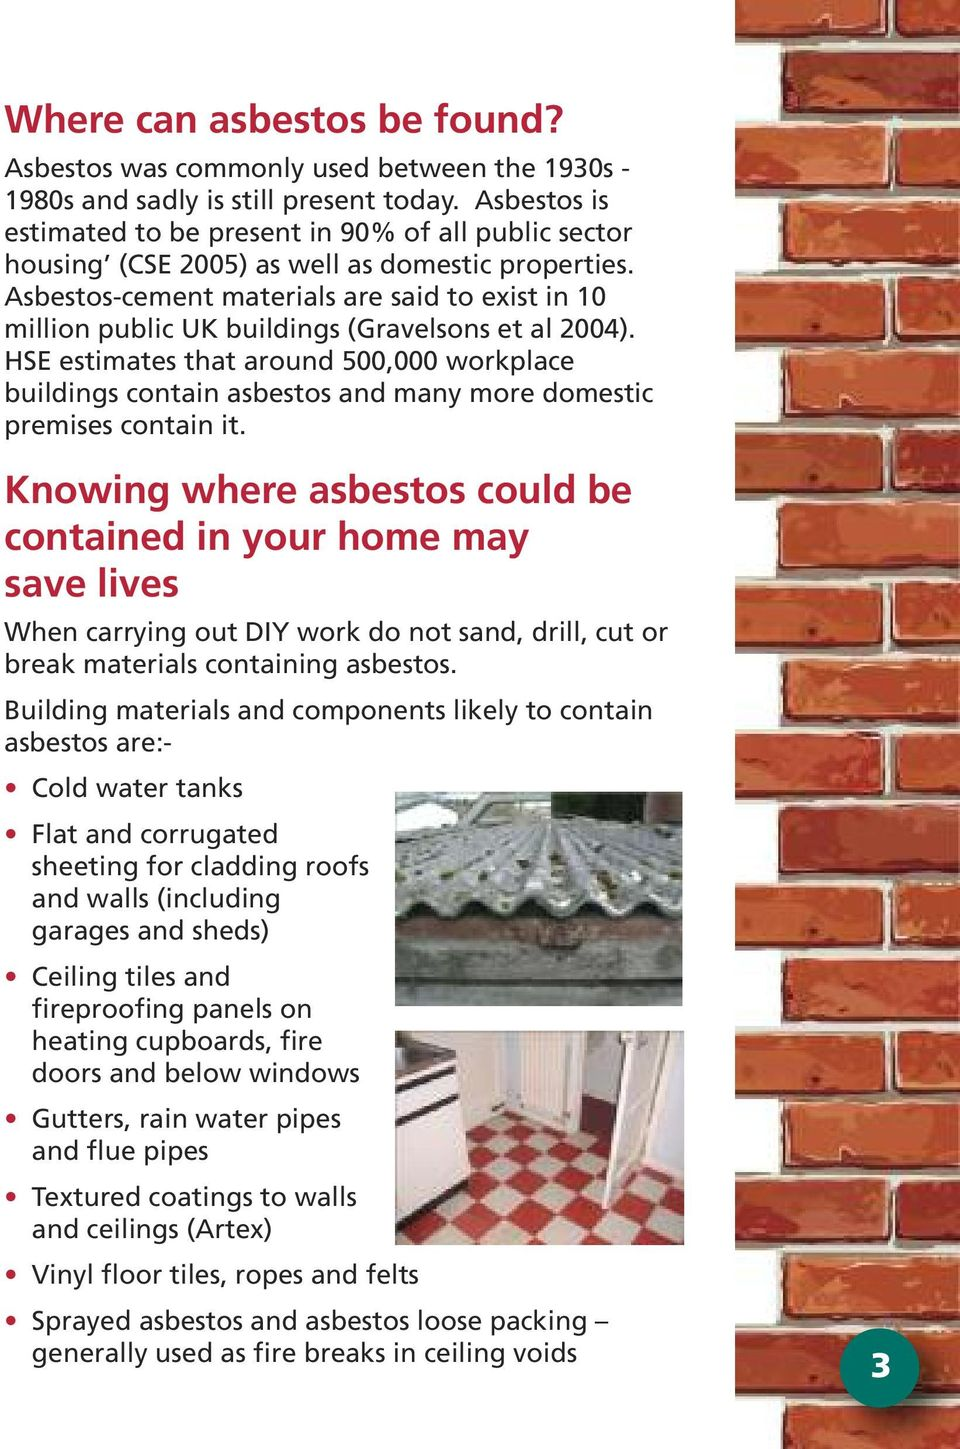 Asbestos-cement materials are said to exist in 10 million public UK buildings (Gravelsons et al 2004).